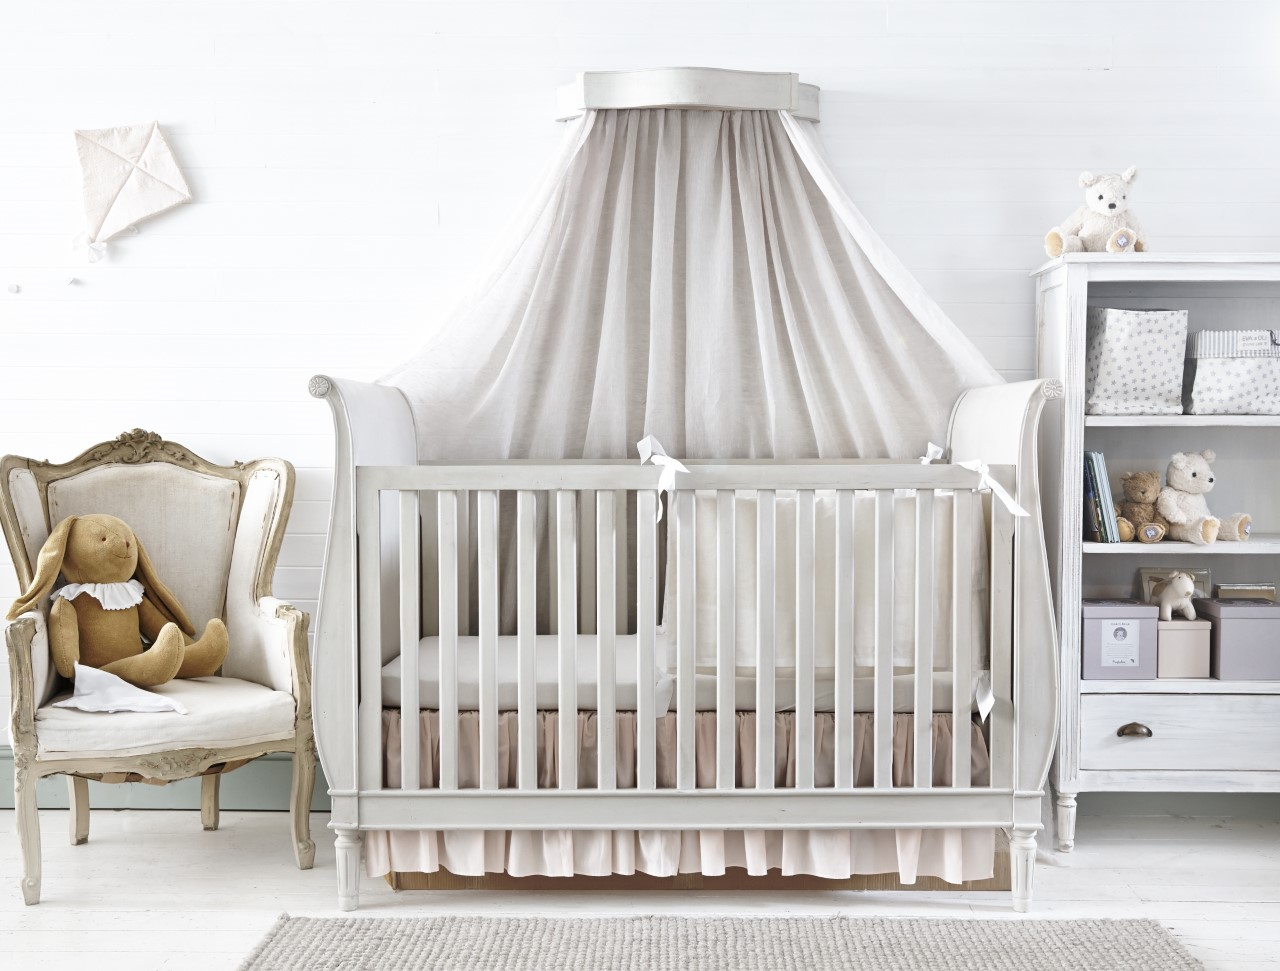 30 Luxury Baby Furniture Interior Design Bedroom Ideas Check More At Http